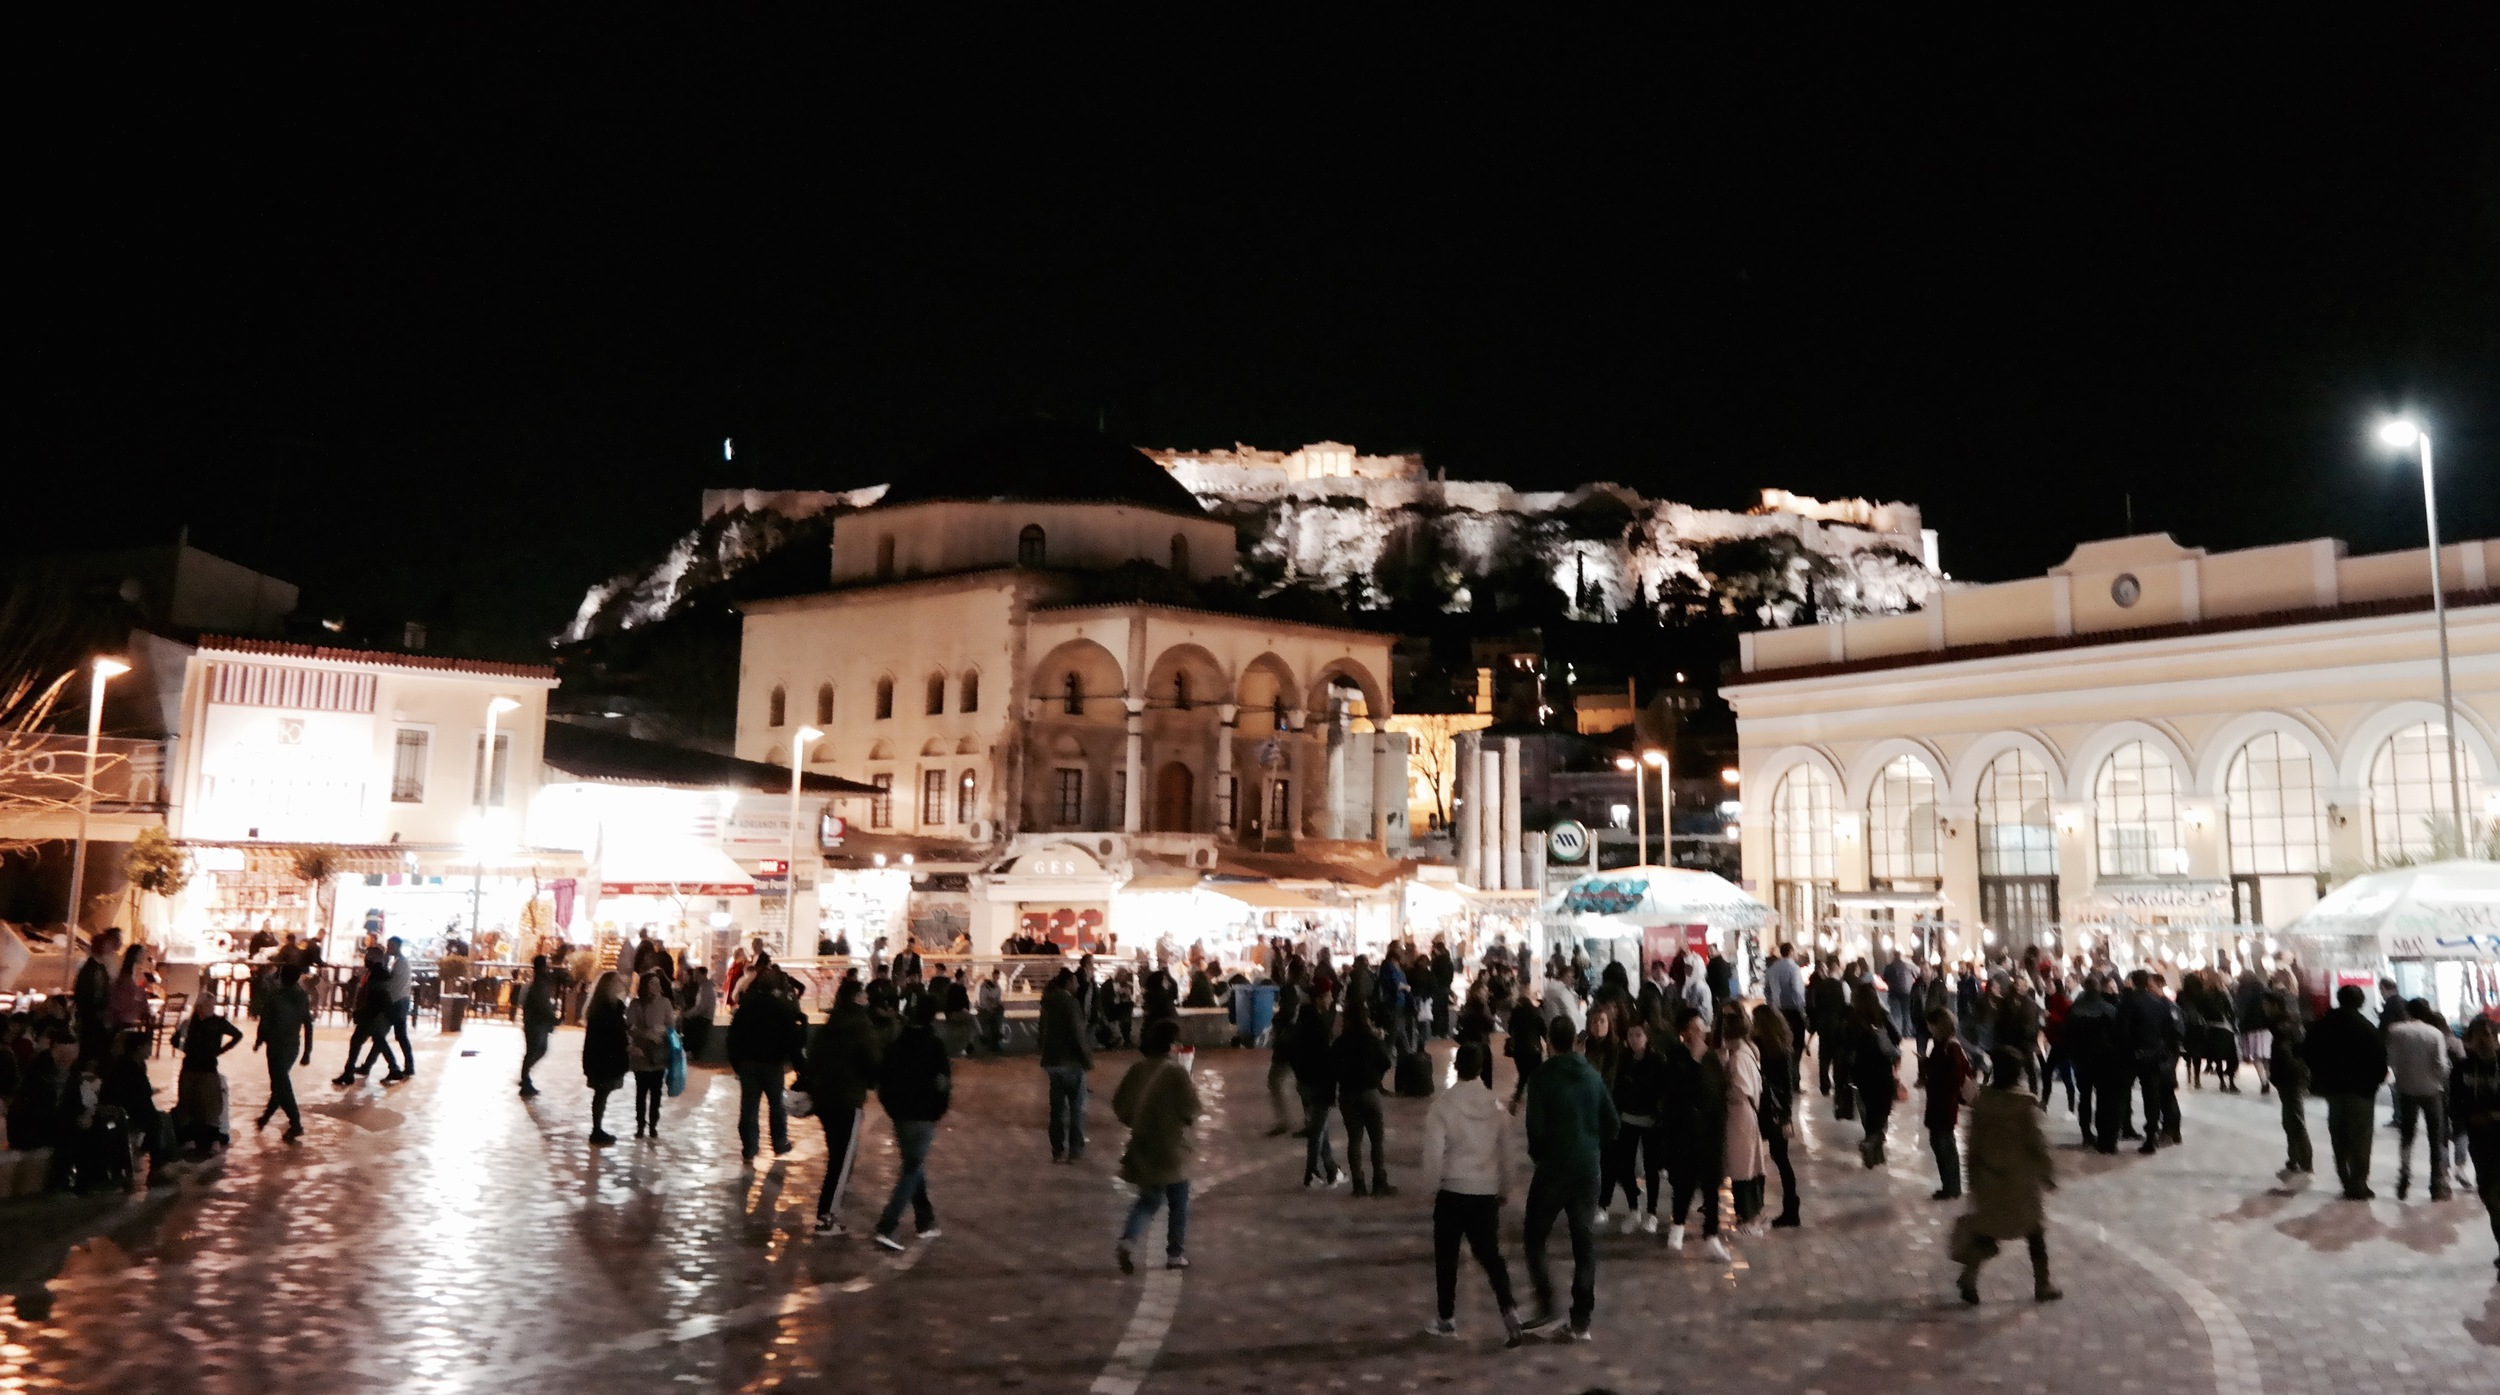 Syntagma, the center of the city is bustling at night. This square was a great spot to stop, eat some frozen Greek yogurt, and people watch. The view of the Acropolis overlooking the city is a nice touch. :)